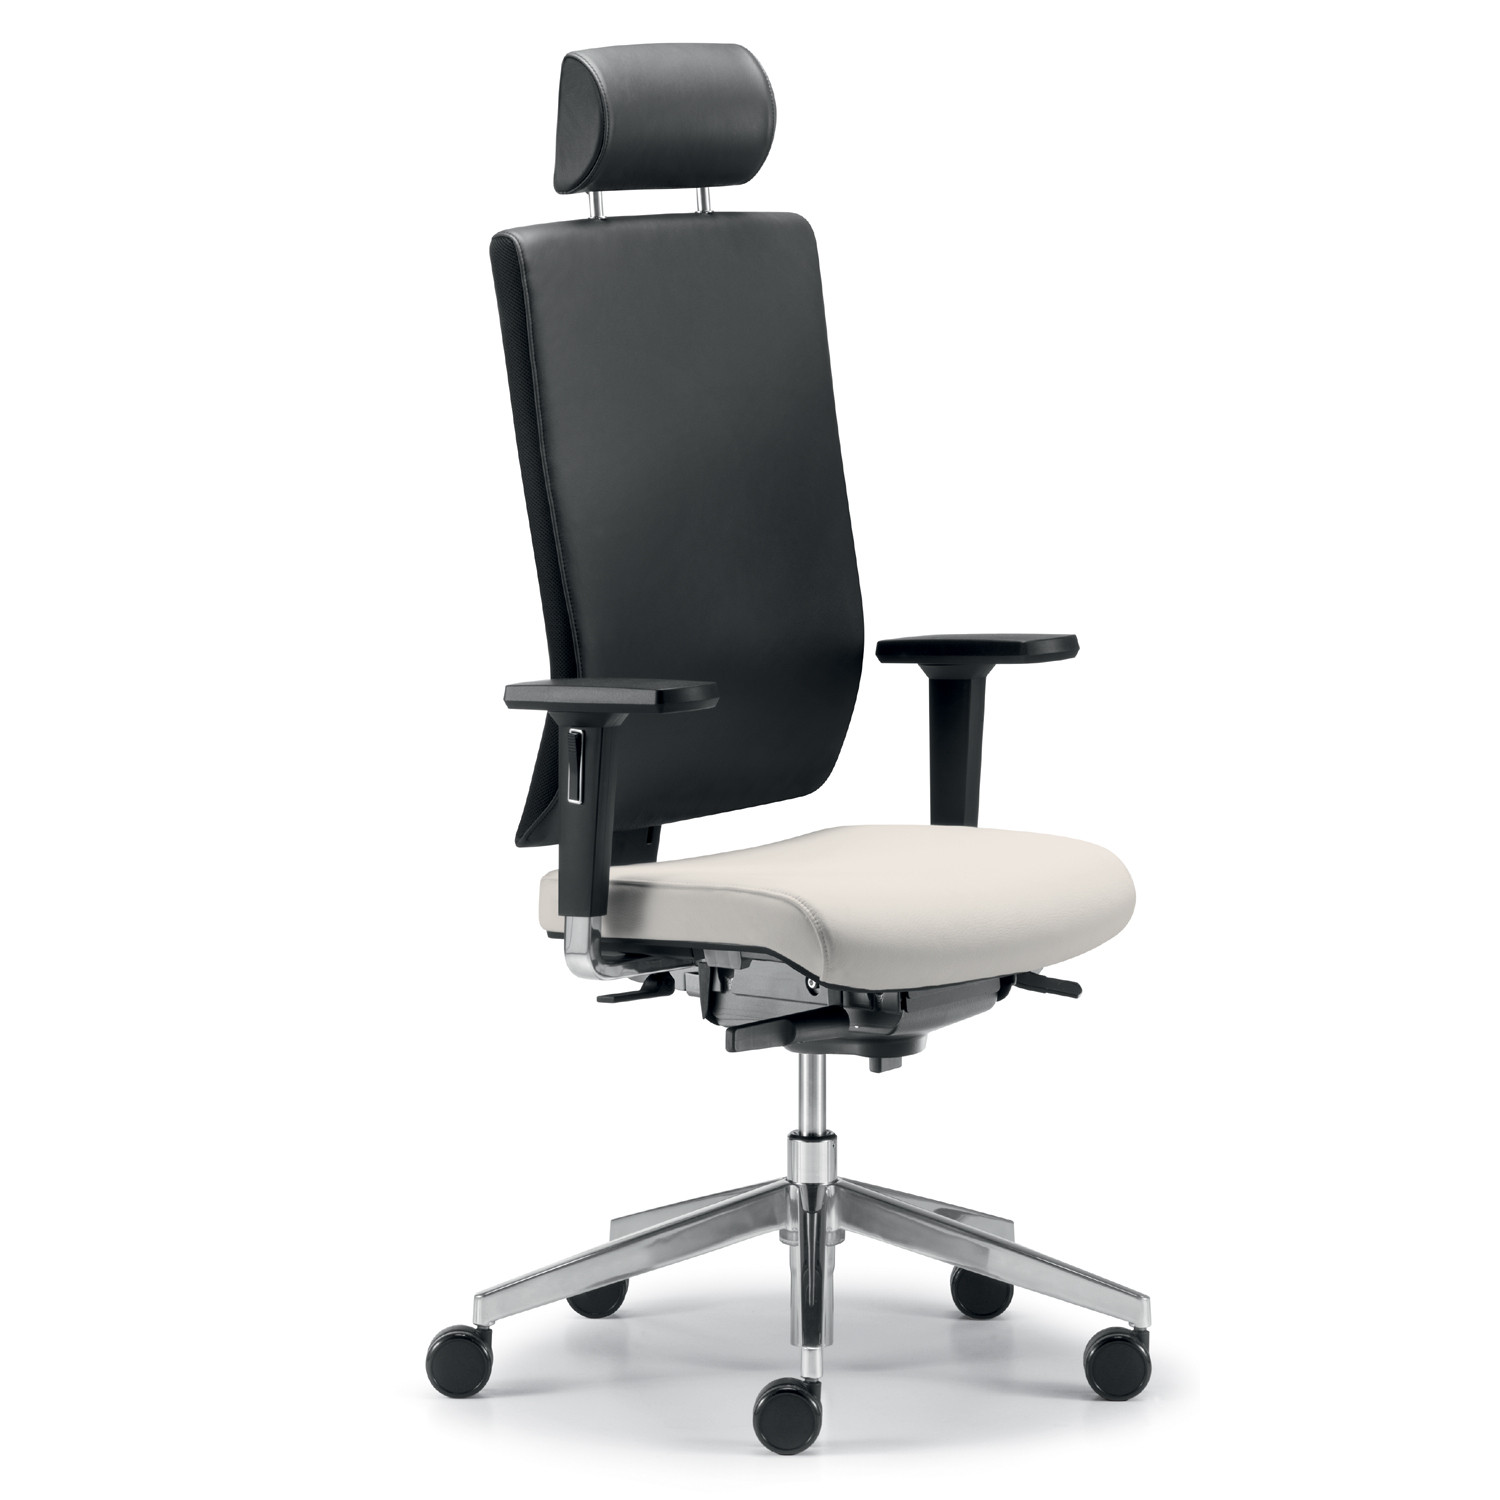 TakeOver Office Swivel Chair